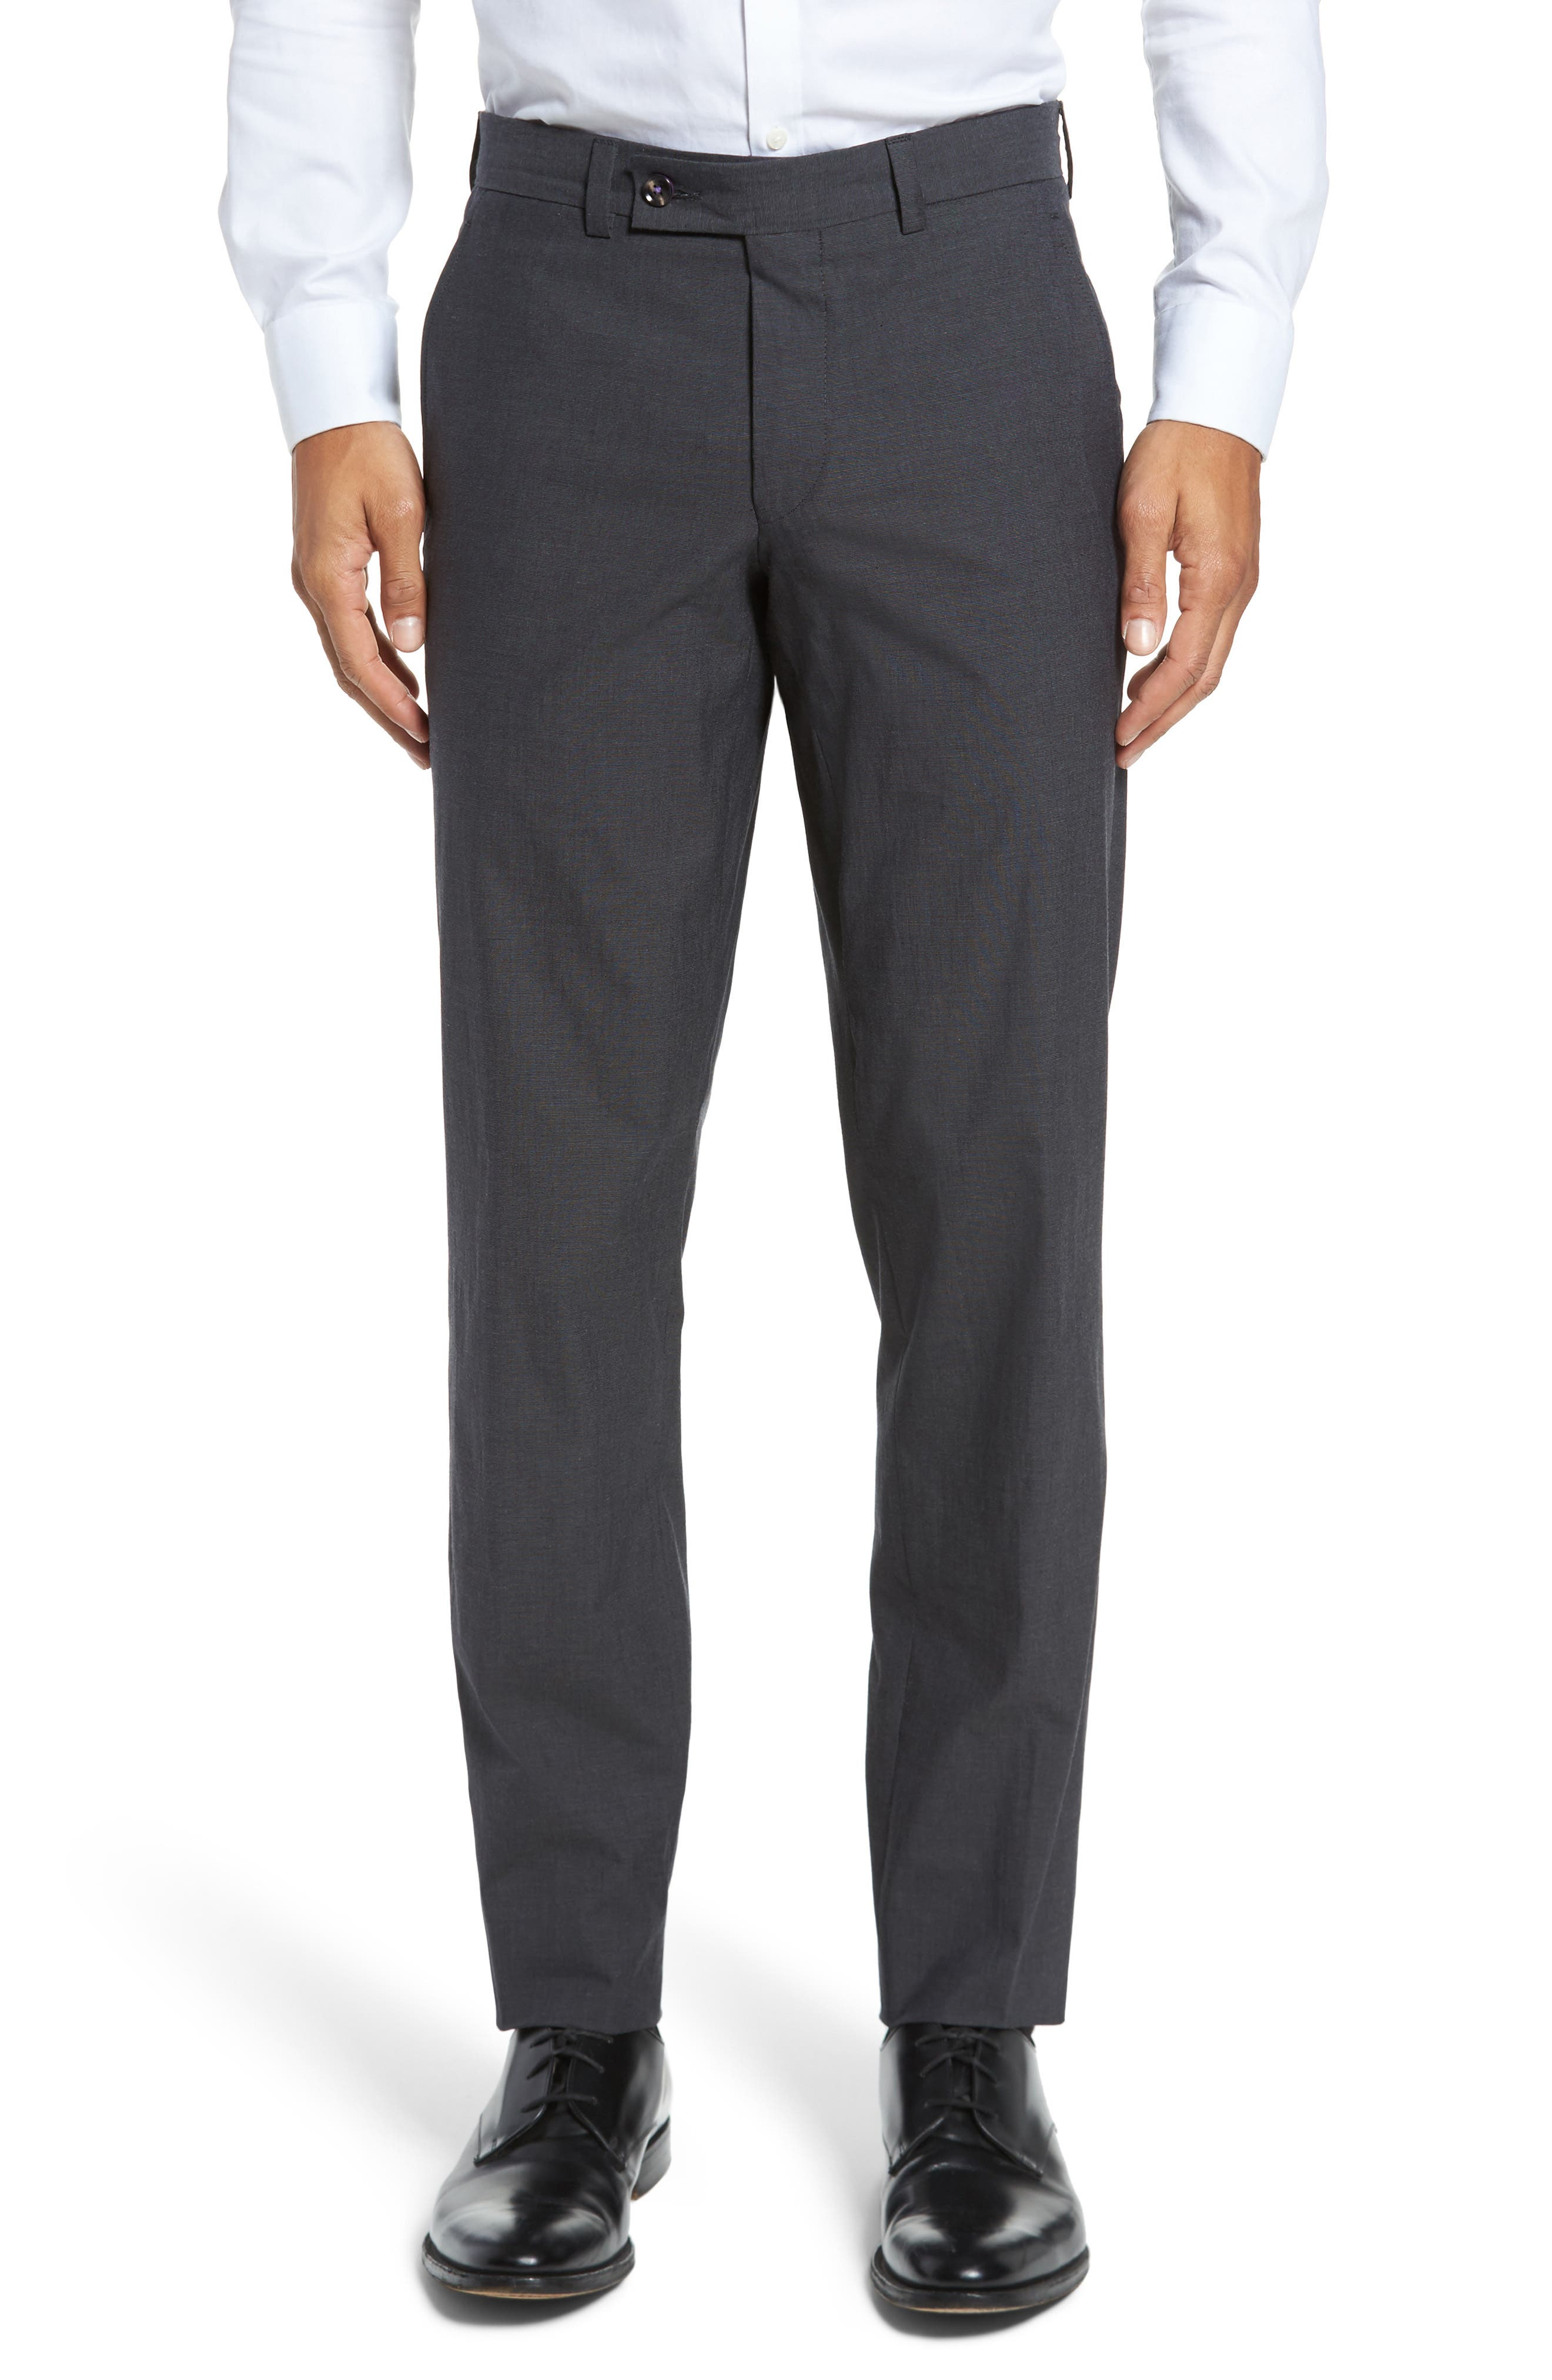 Jerome Flat Front Stretch Solid Cotton Trousers,                             Main thumbnail 1, color,                             Charcoal